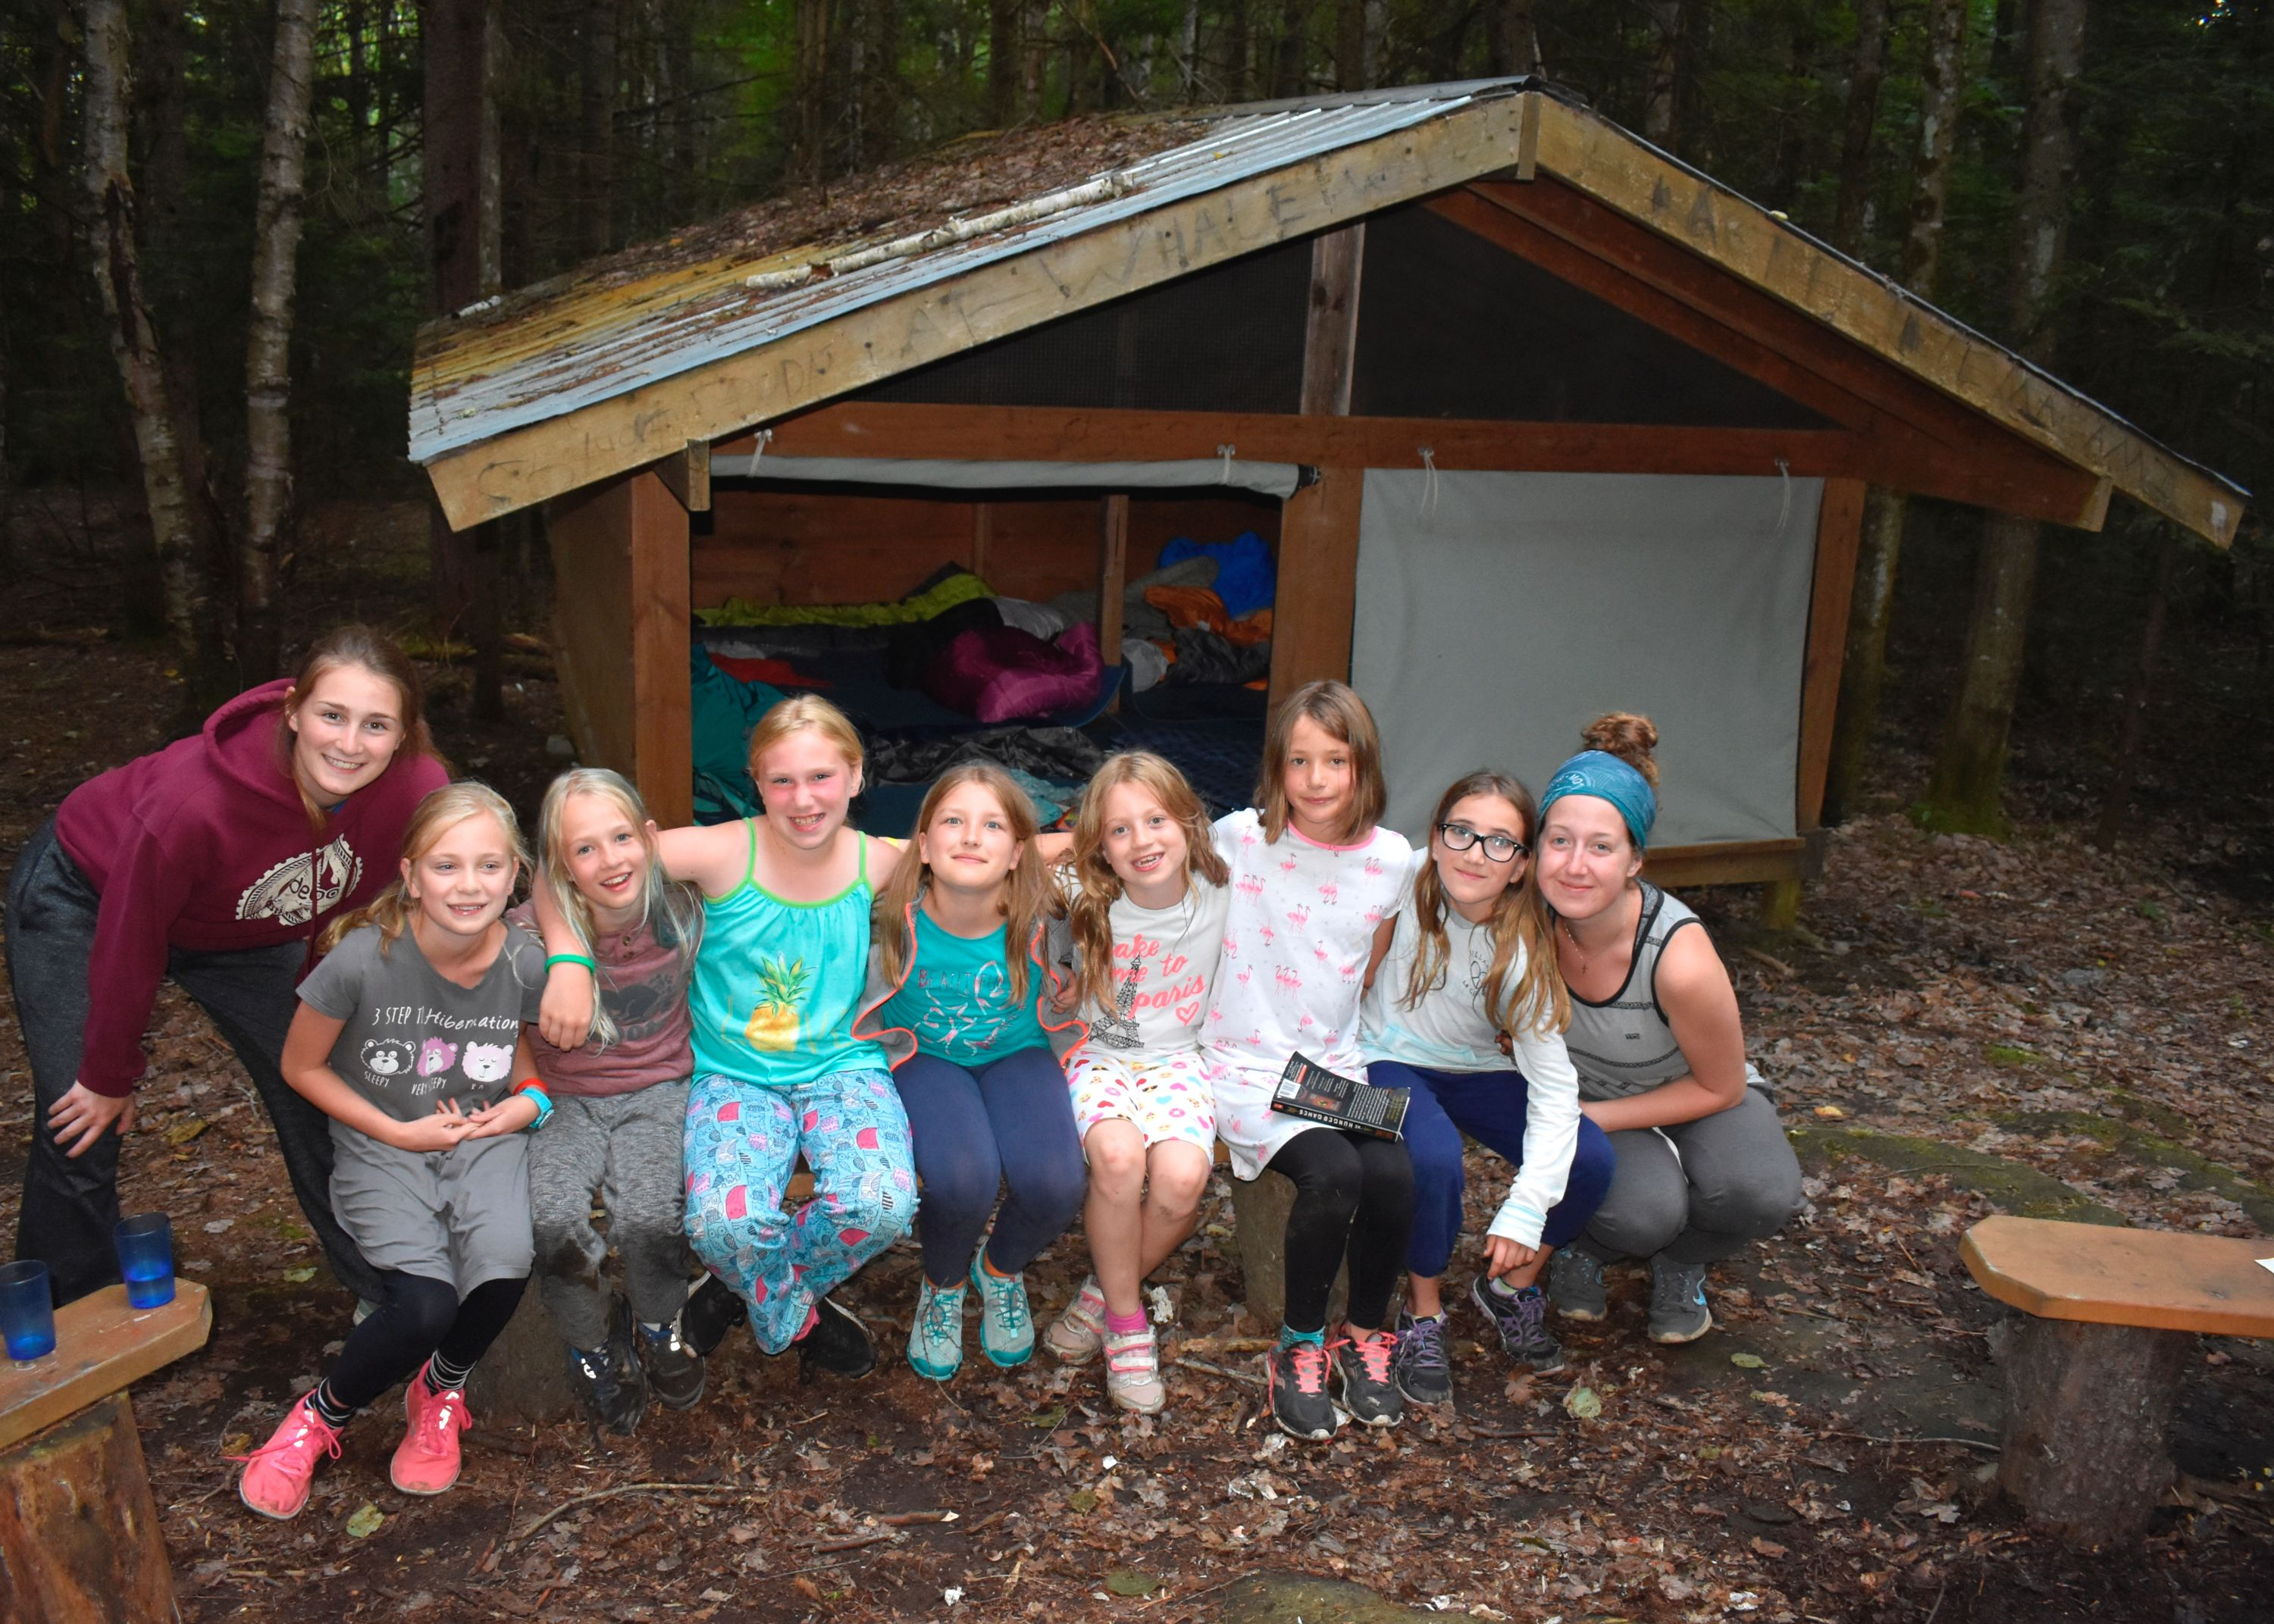 Campers at camp out at christian adventure summer camp in haliburton, ontario